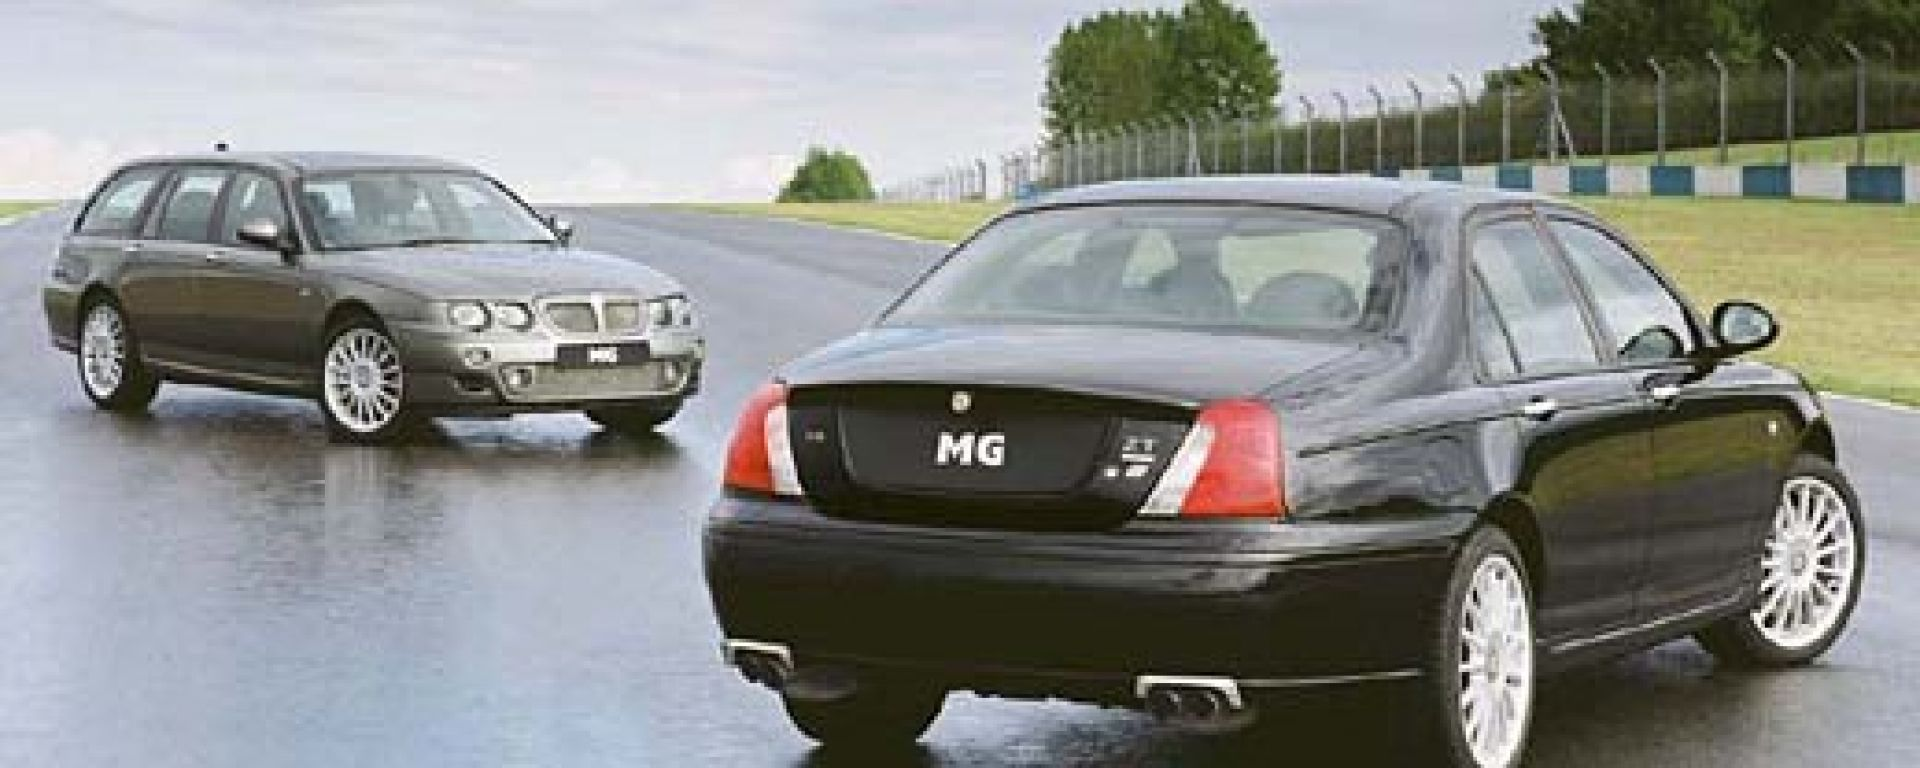 Muscle car: MG ZT (ZT-T) 260 V8